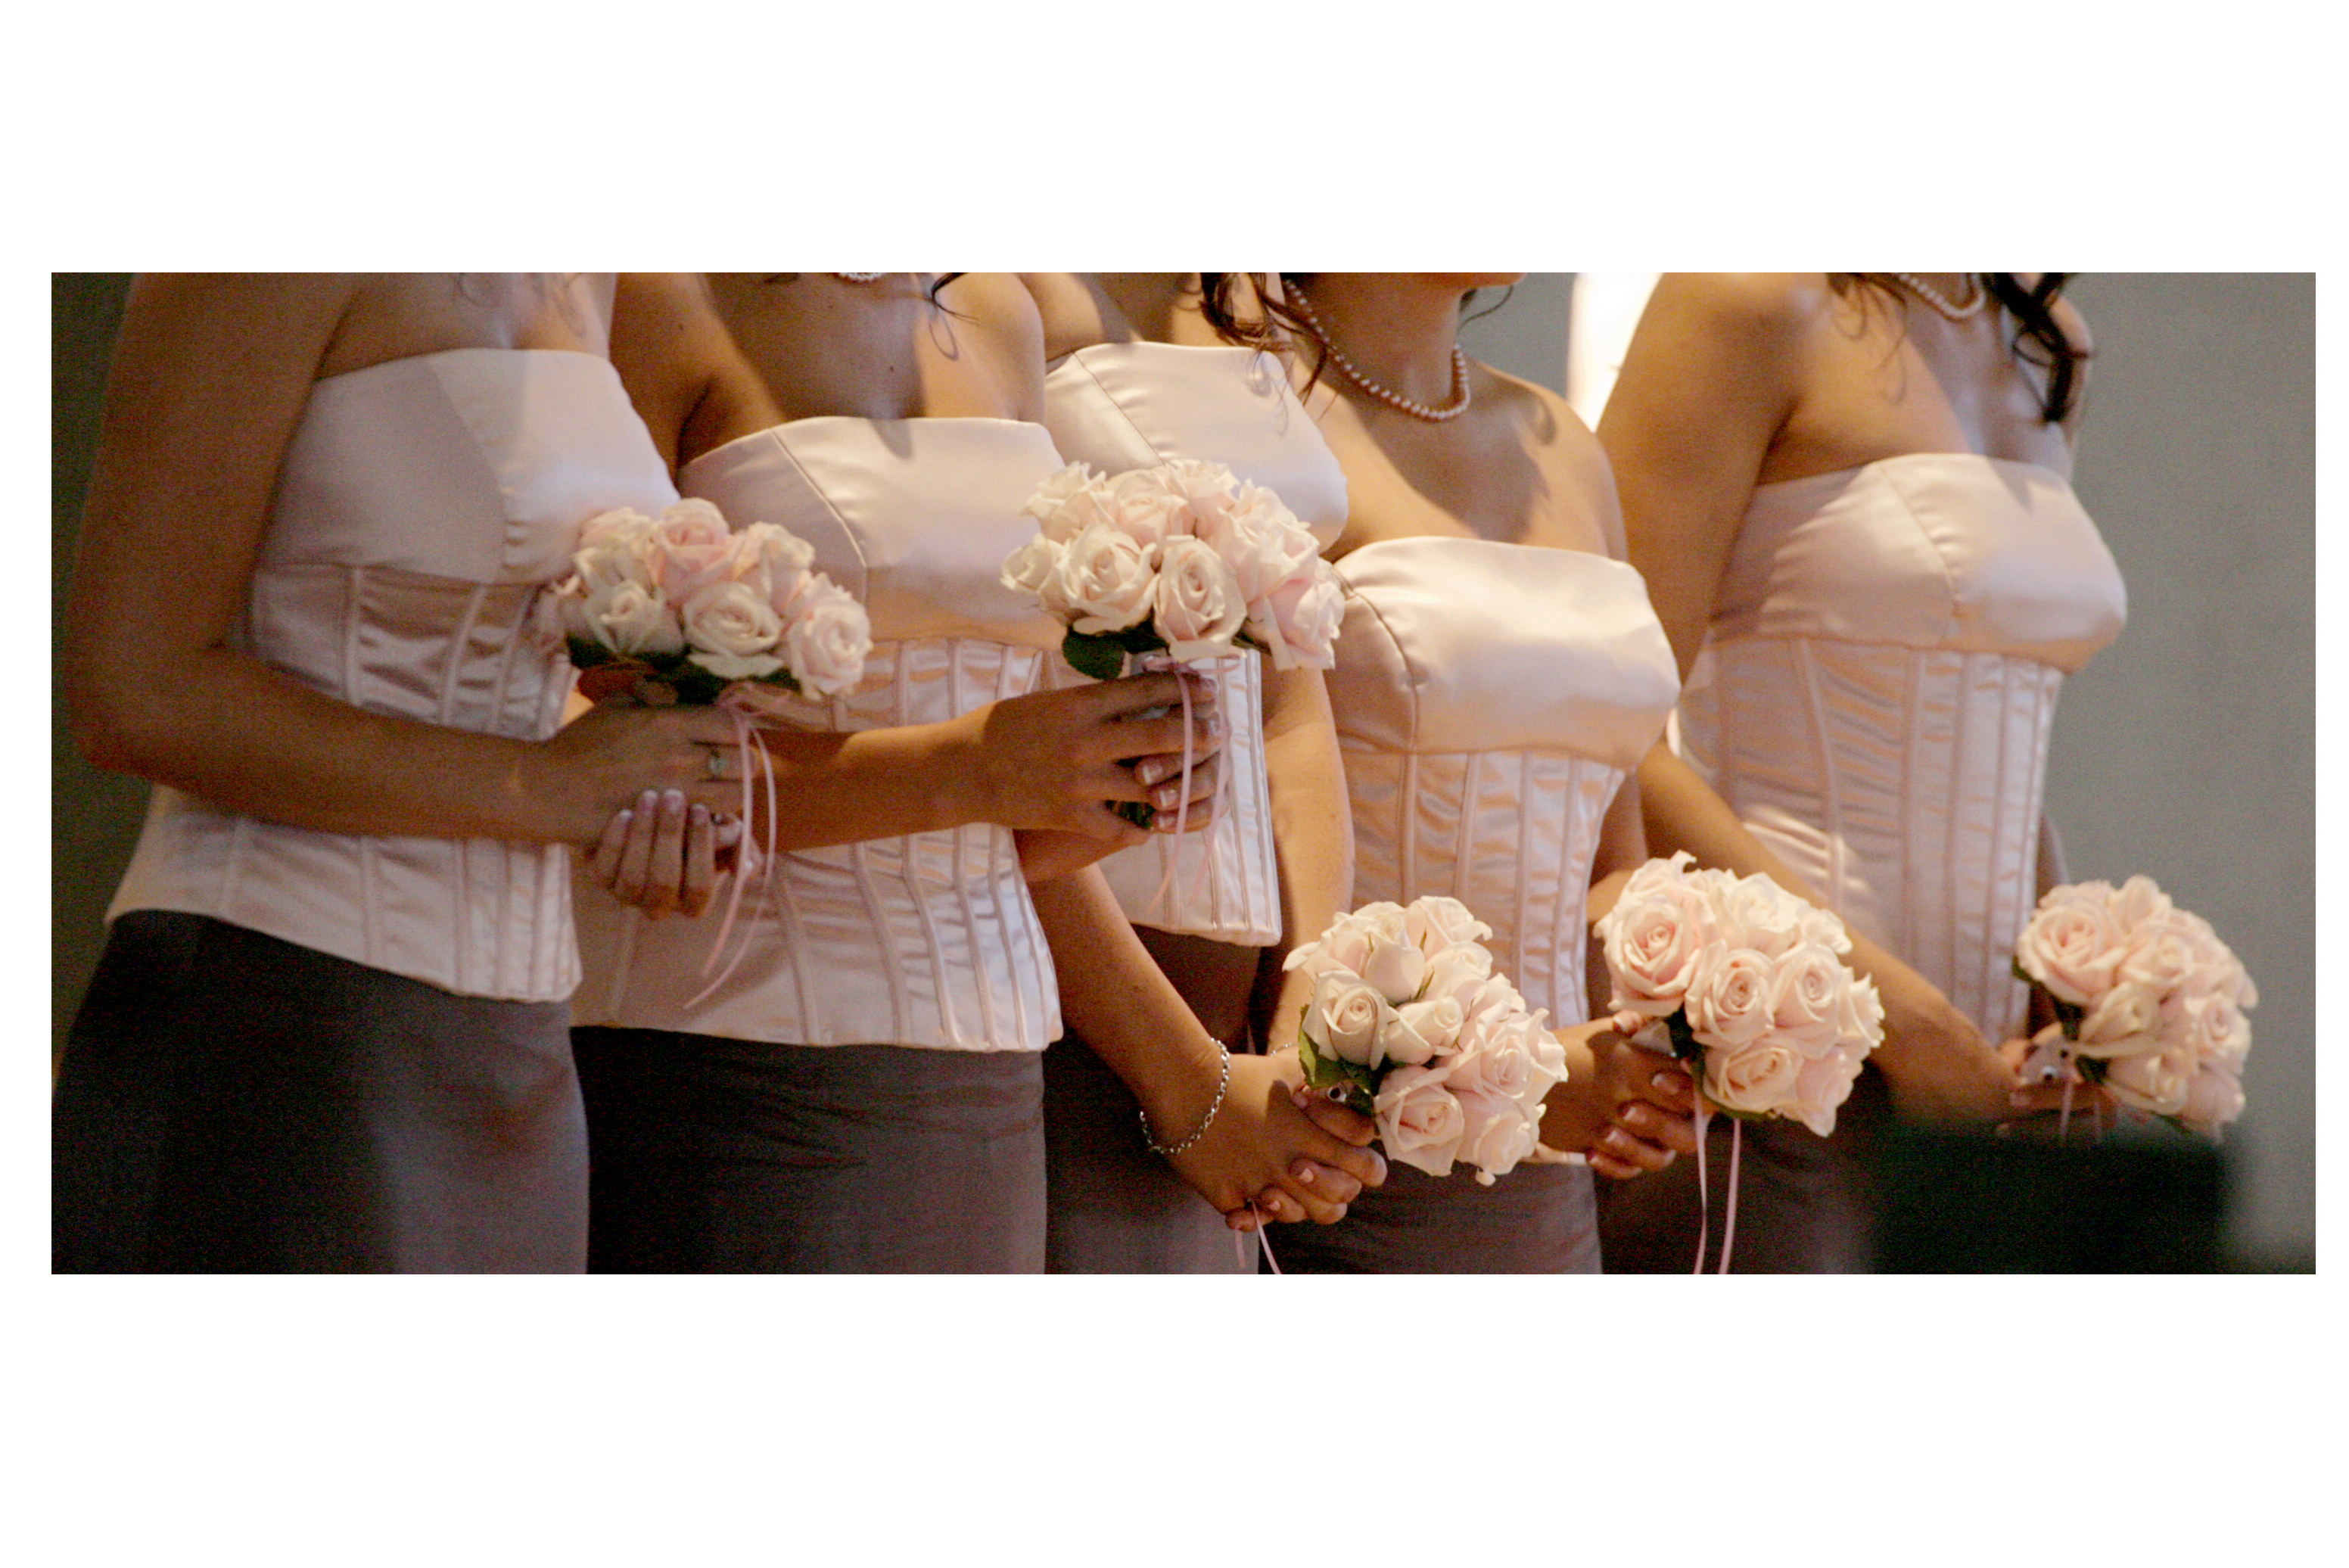 Flowers & Decor, Bridesmaids, Bridesmaids Dresses, Fashion, pink, brown, Bride Bouquets, Bridesmaid Bouquets, Flowers, Bouquet, Flower Wedding Dresses